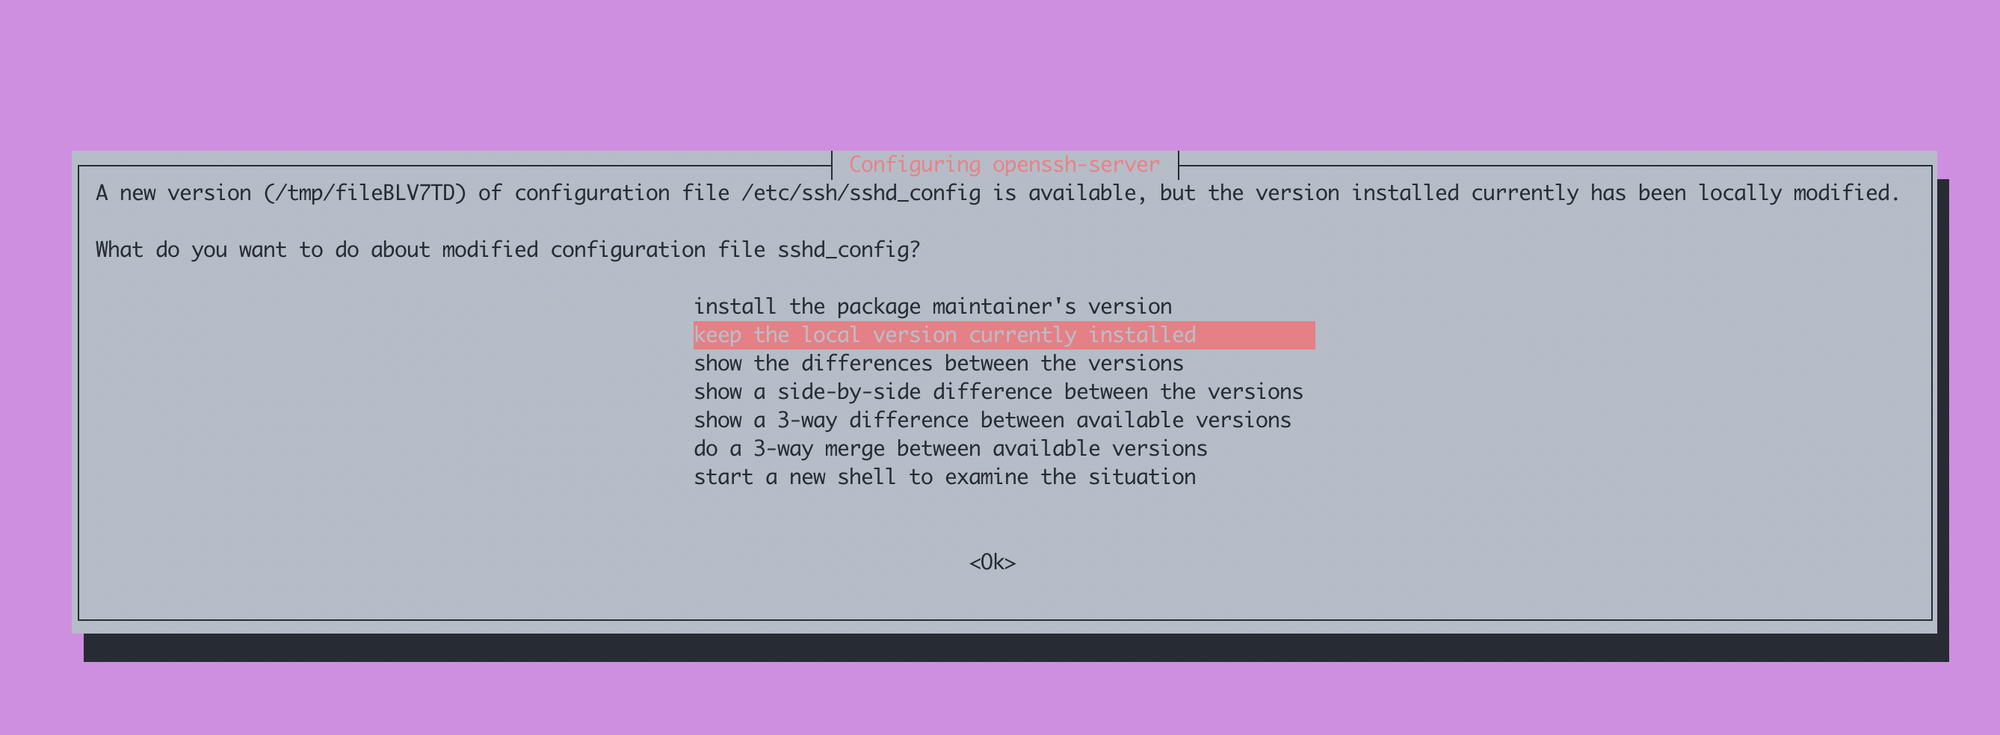 Choose to keep the local version currently installed of sshd_config file